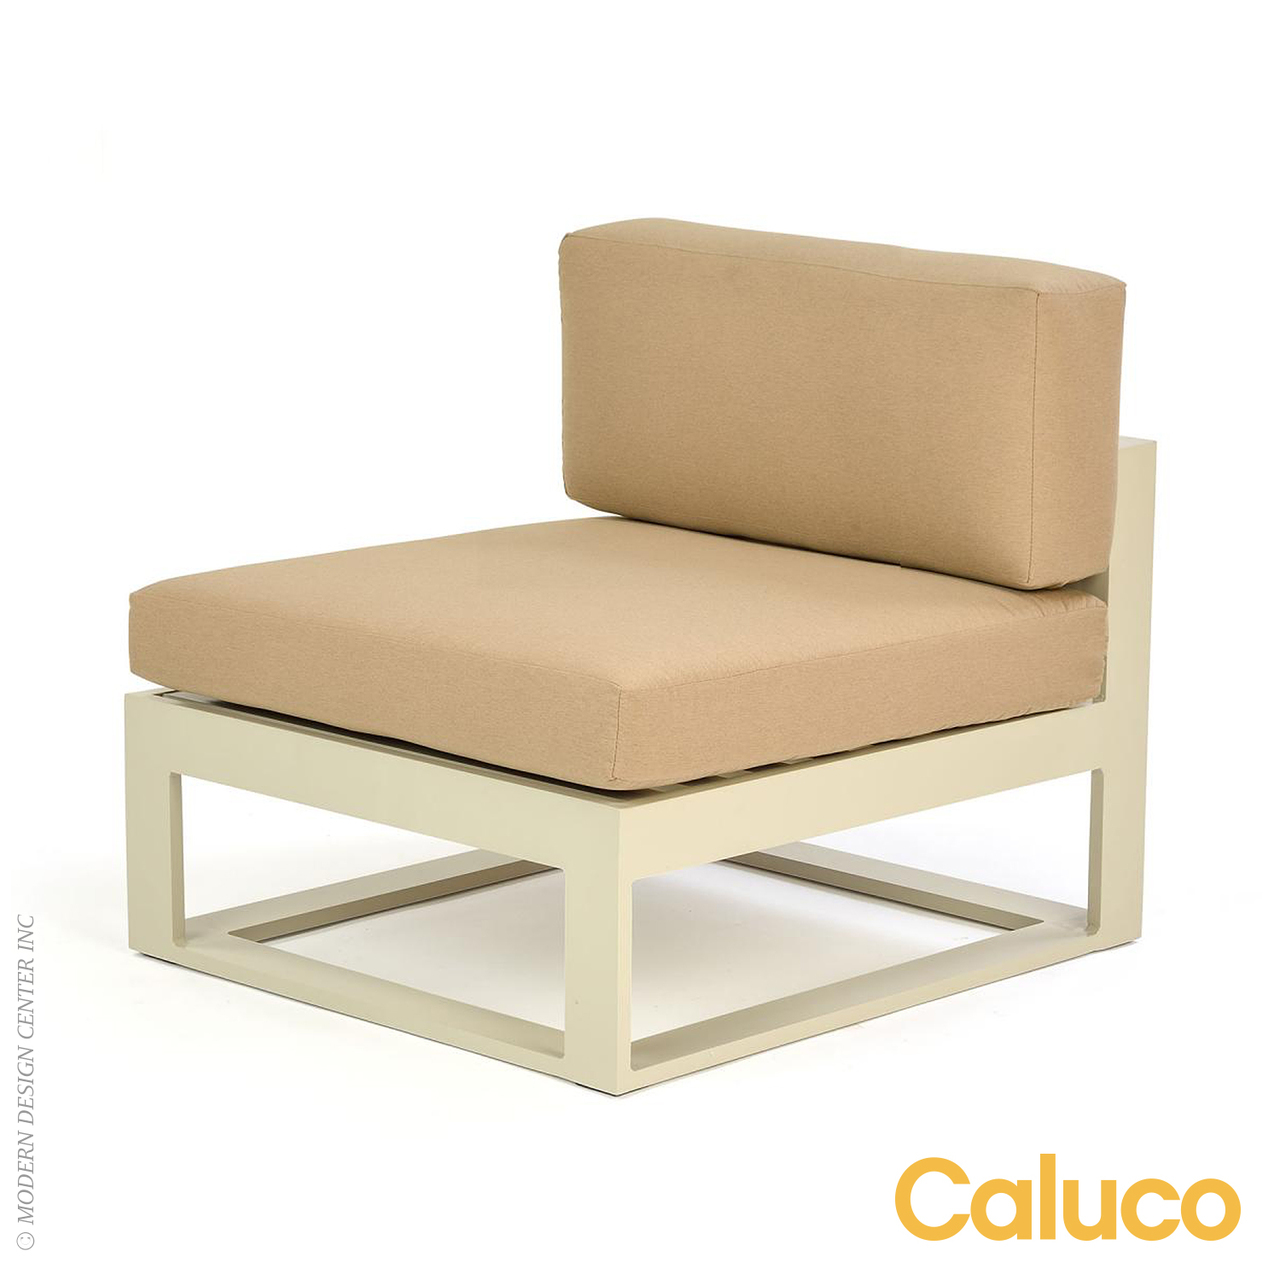 Space sectional middle caluco patio furniture metropolitandecor - Outdoor sectionals for small spaces collection ...